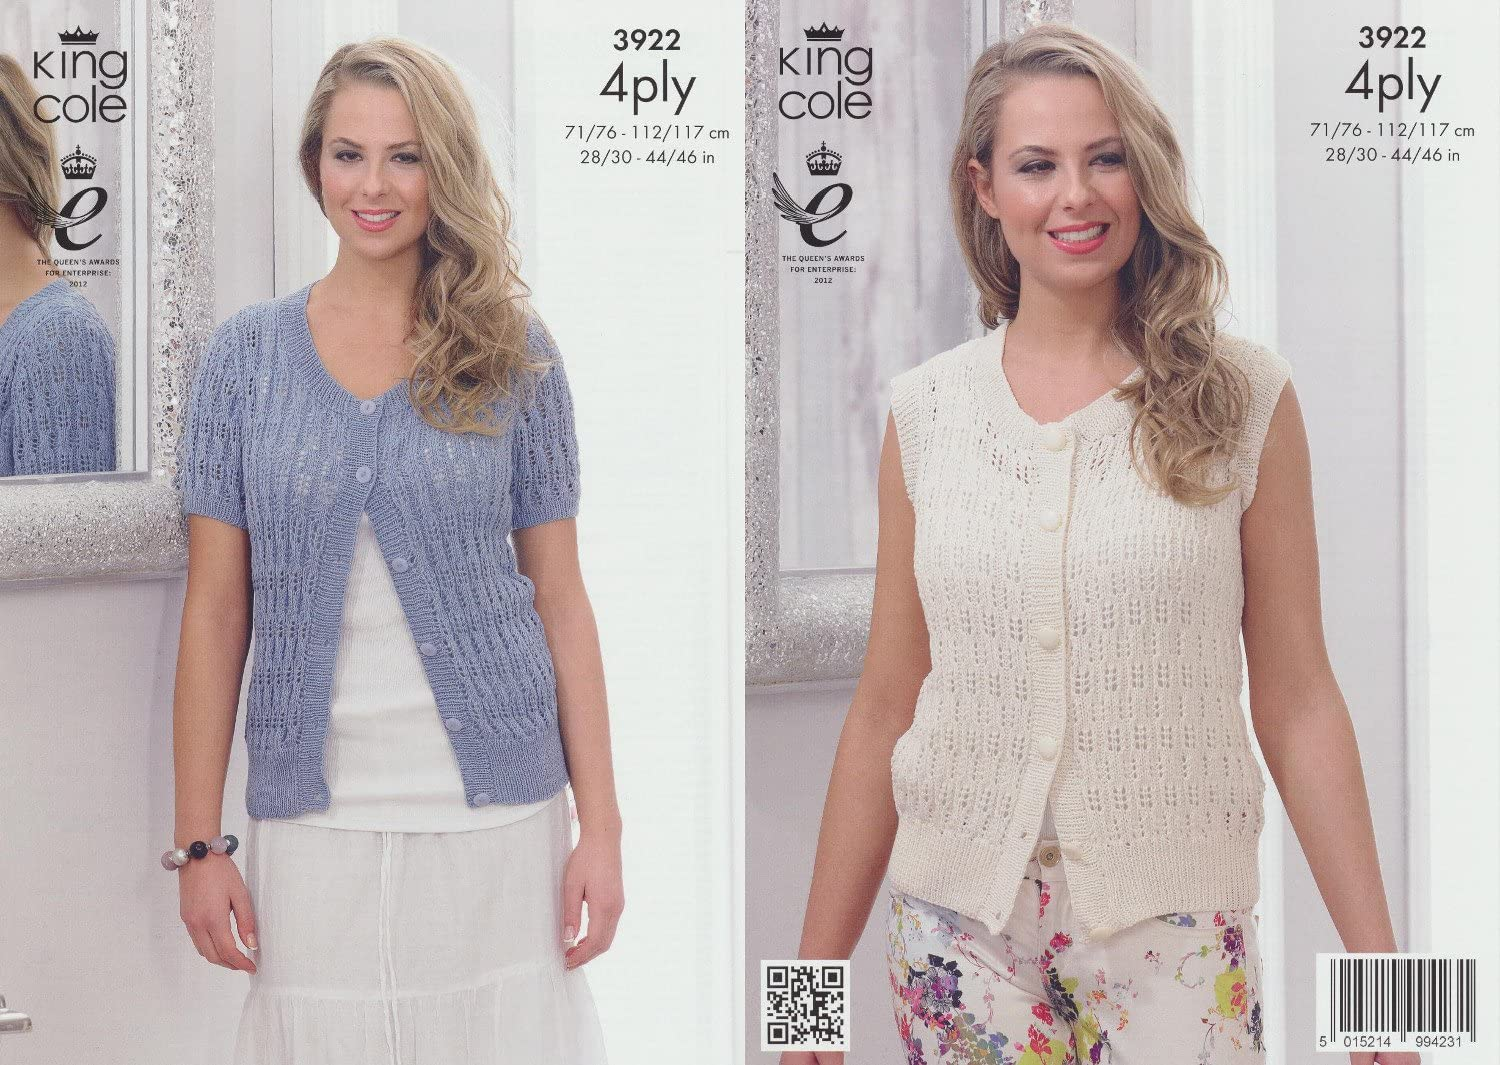 King Cole Ladies 4ply Knitting Pattern Womens Short or Cap Sleeve Lacy Top 4786